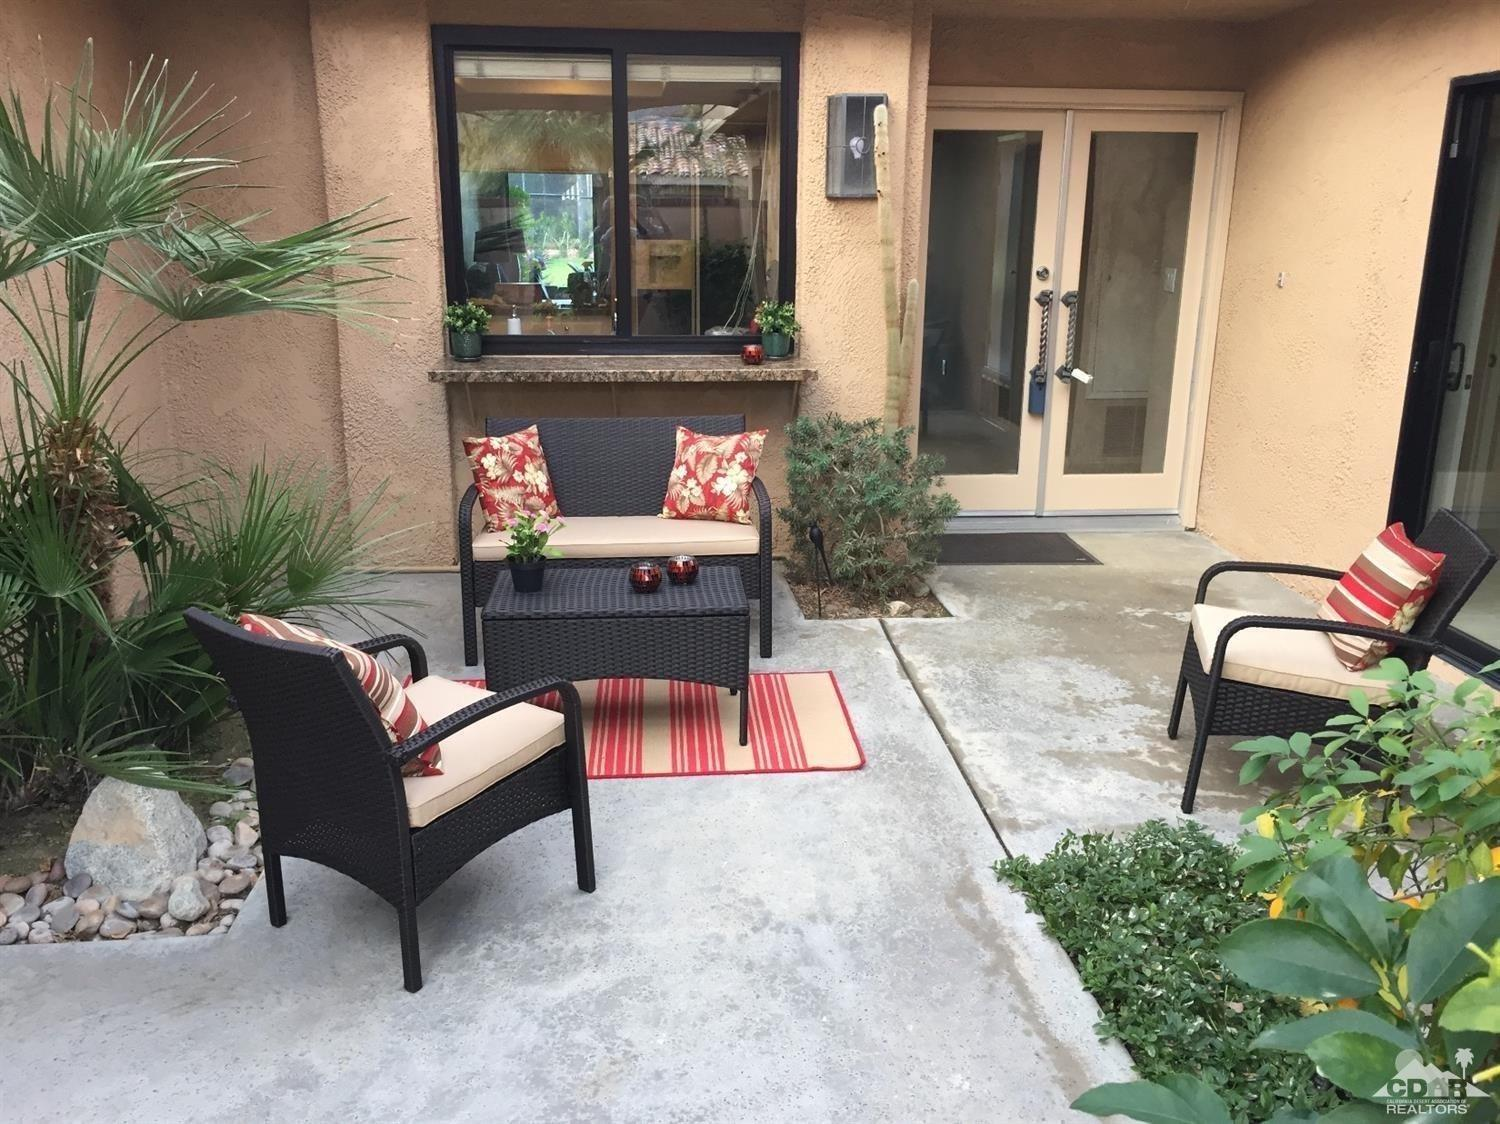 35 Seville Drive, Rancho Mirage, CA 92270